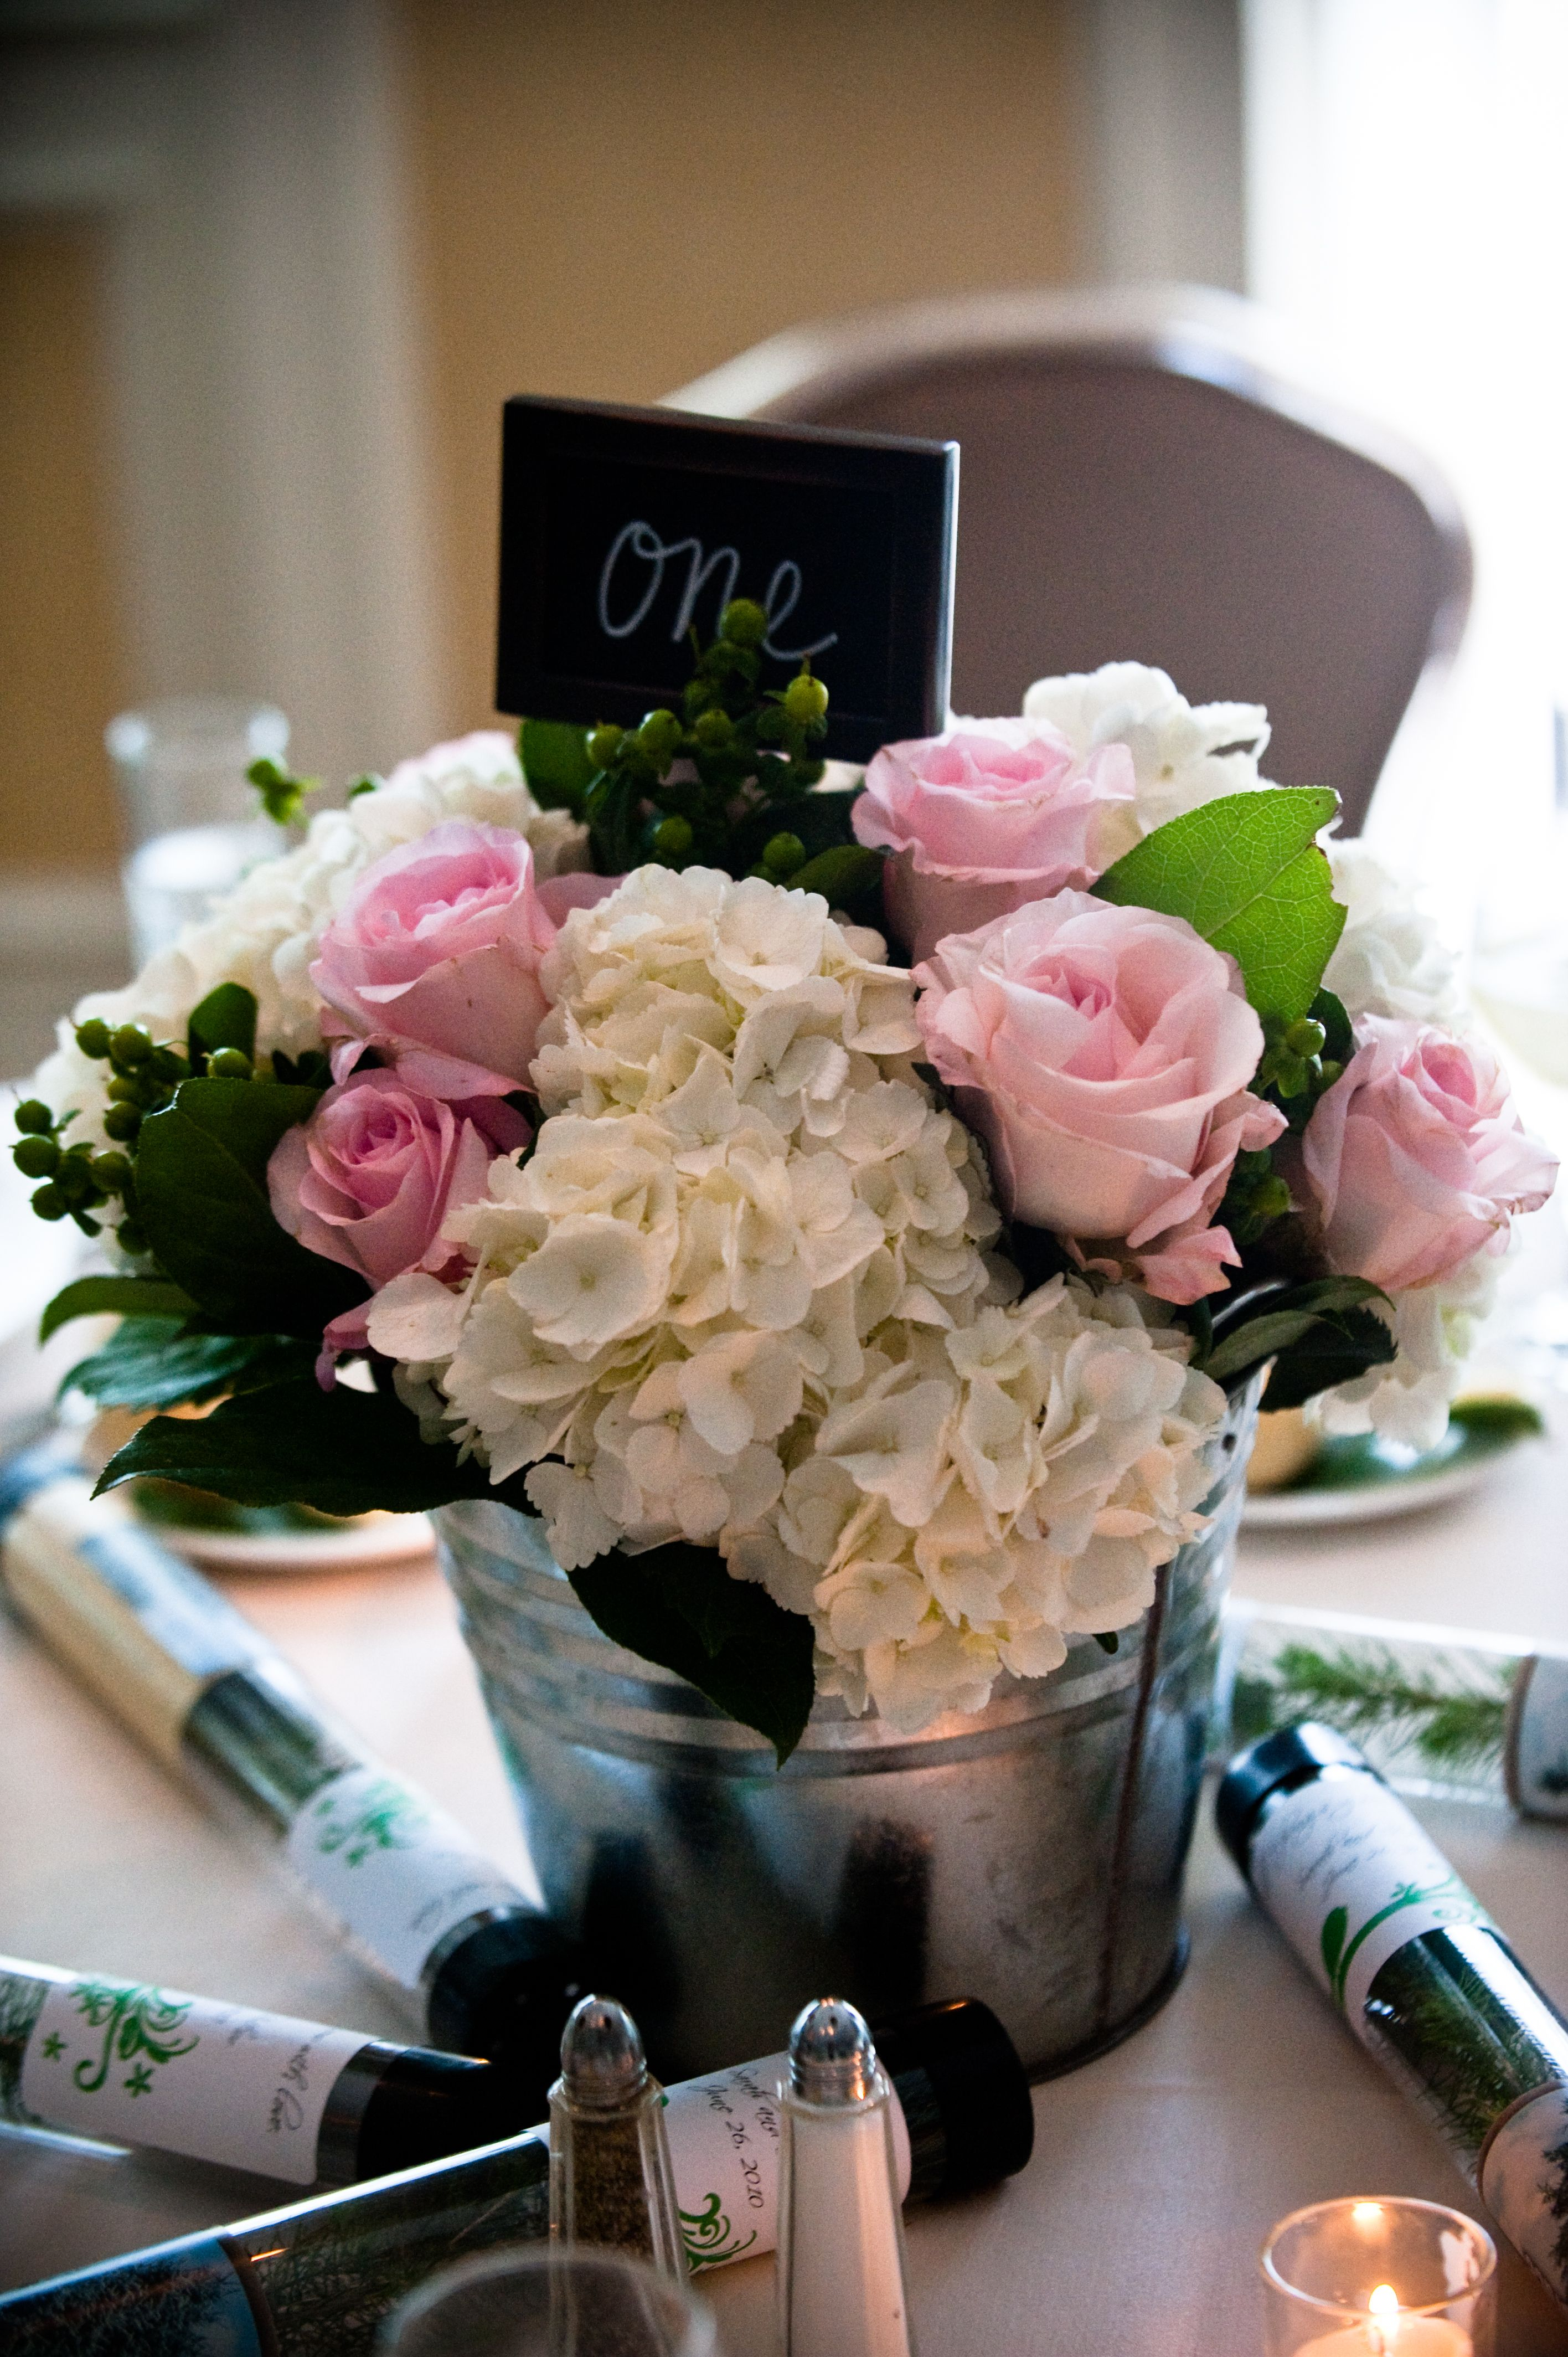 Diy wedding table decorations ideas  DIY wedding The centerpieces were flowers planted in galvanized